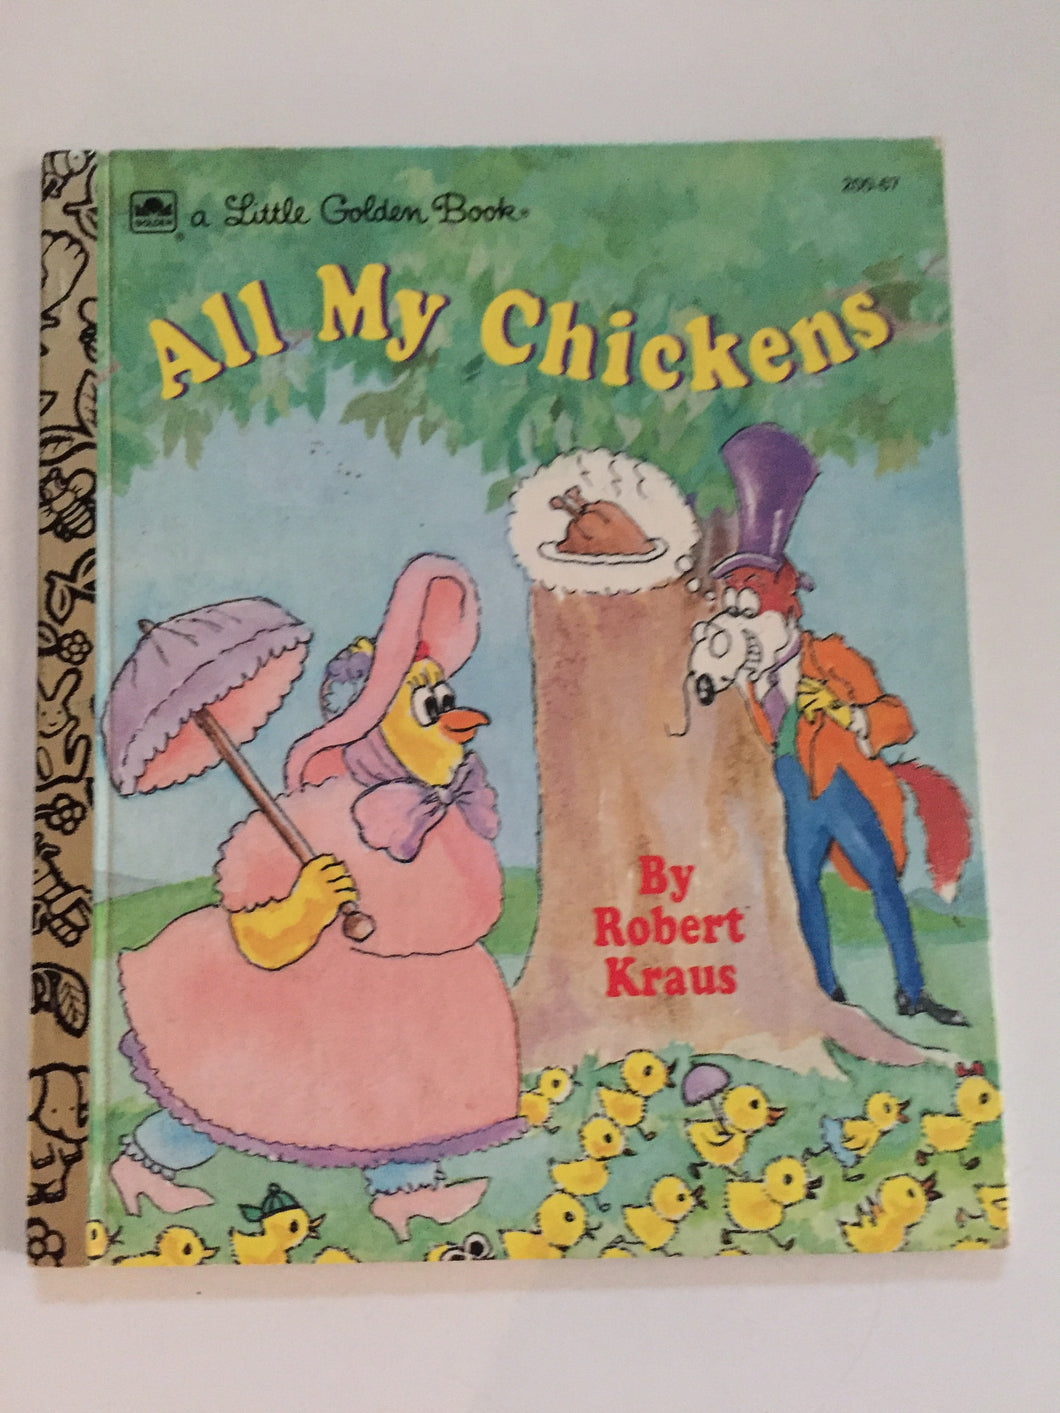 All My Chickens - Slick Cat Books